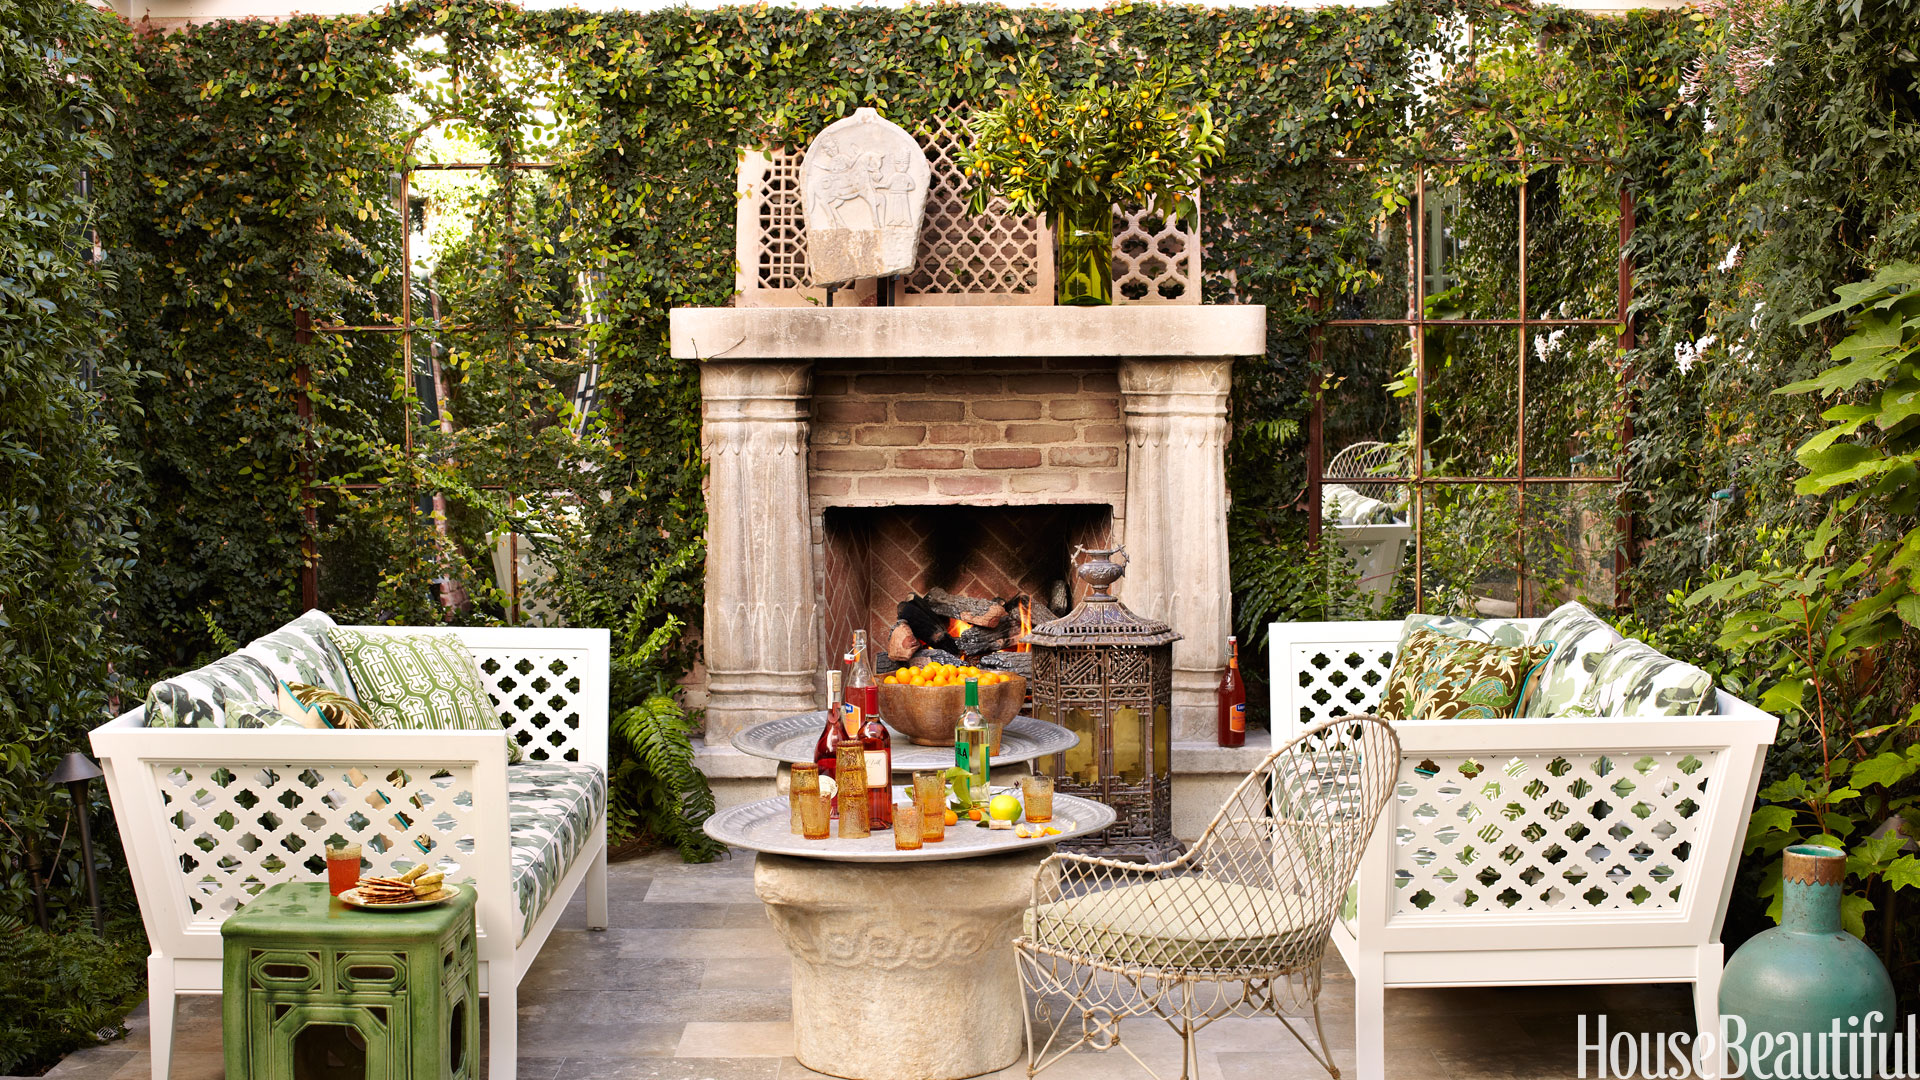 10 outdoor decorating ideas outdoor home decor - Outdoor design ideas for small outdoor space photos ...